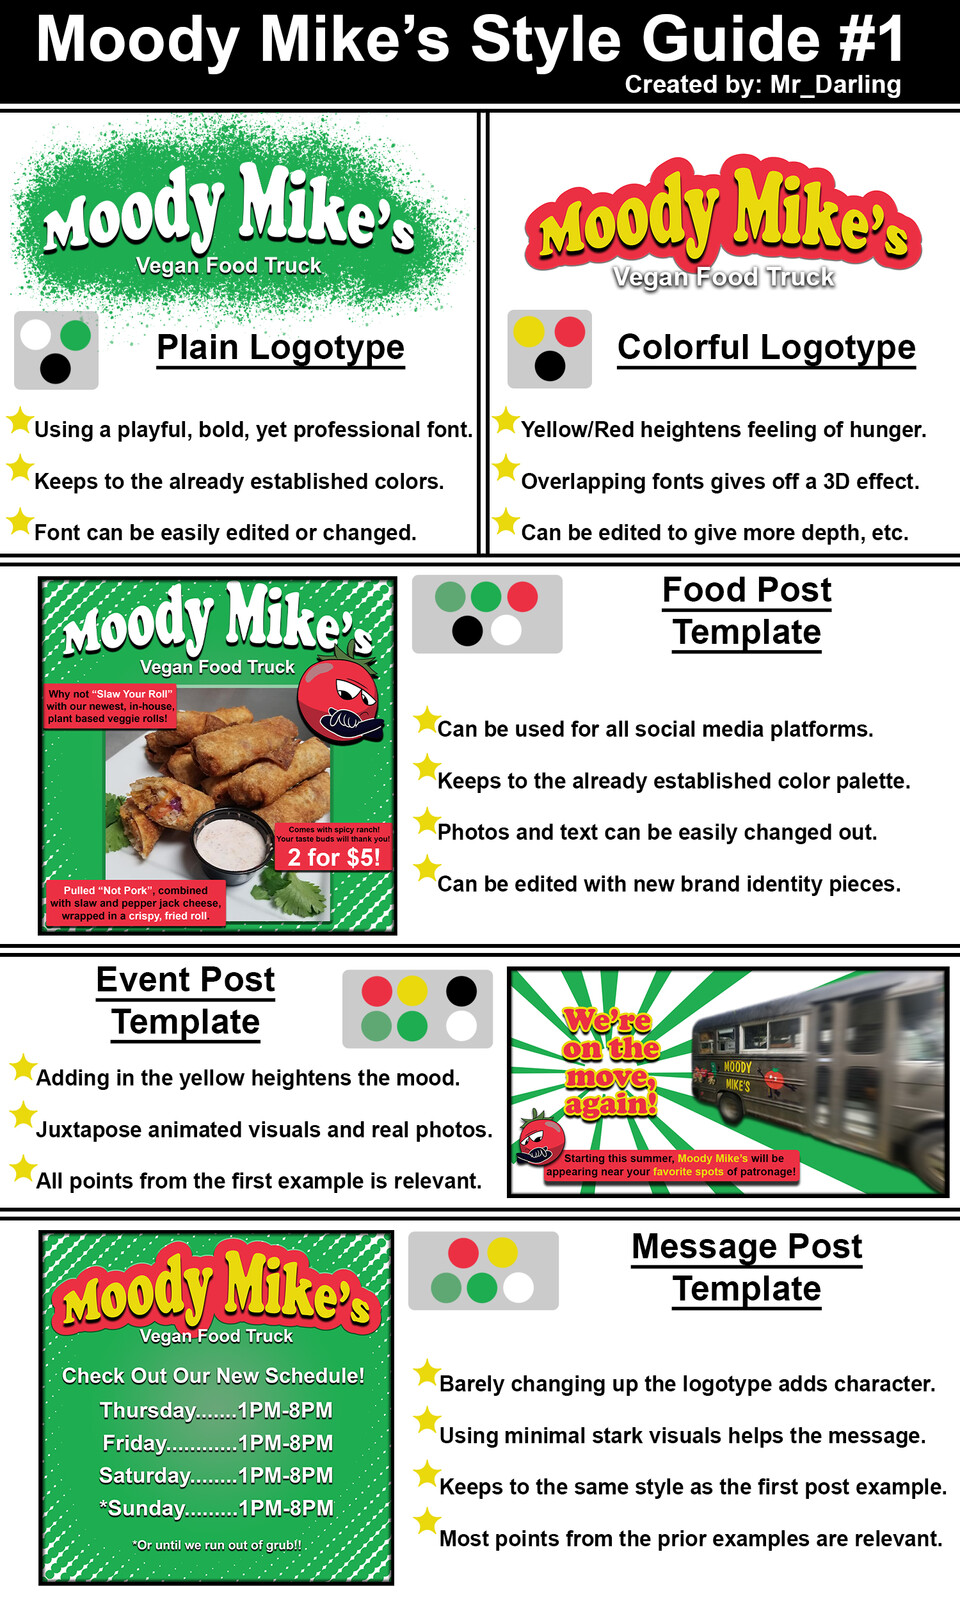 Moody Mike's Style Guide Example